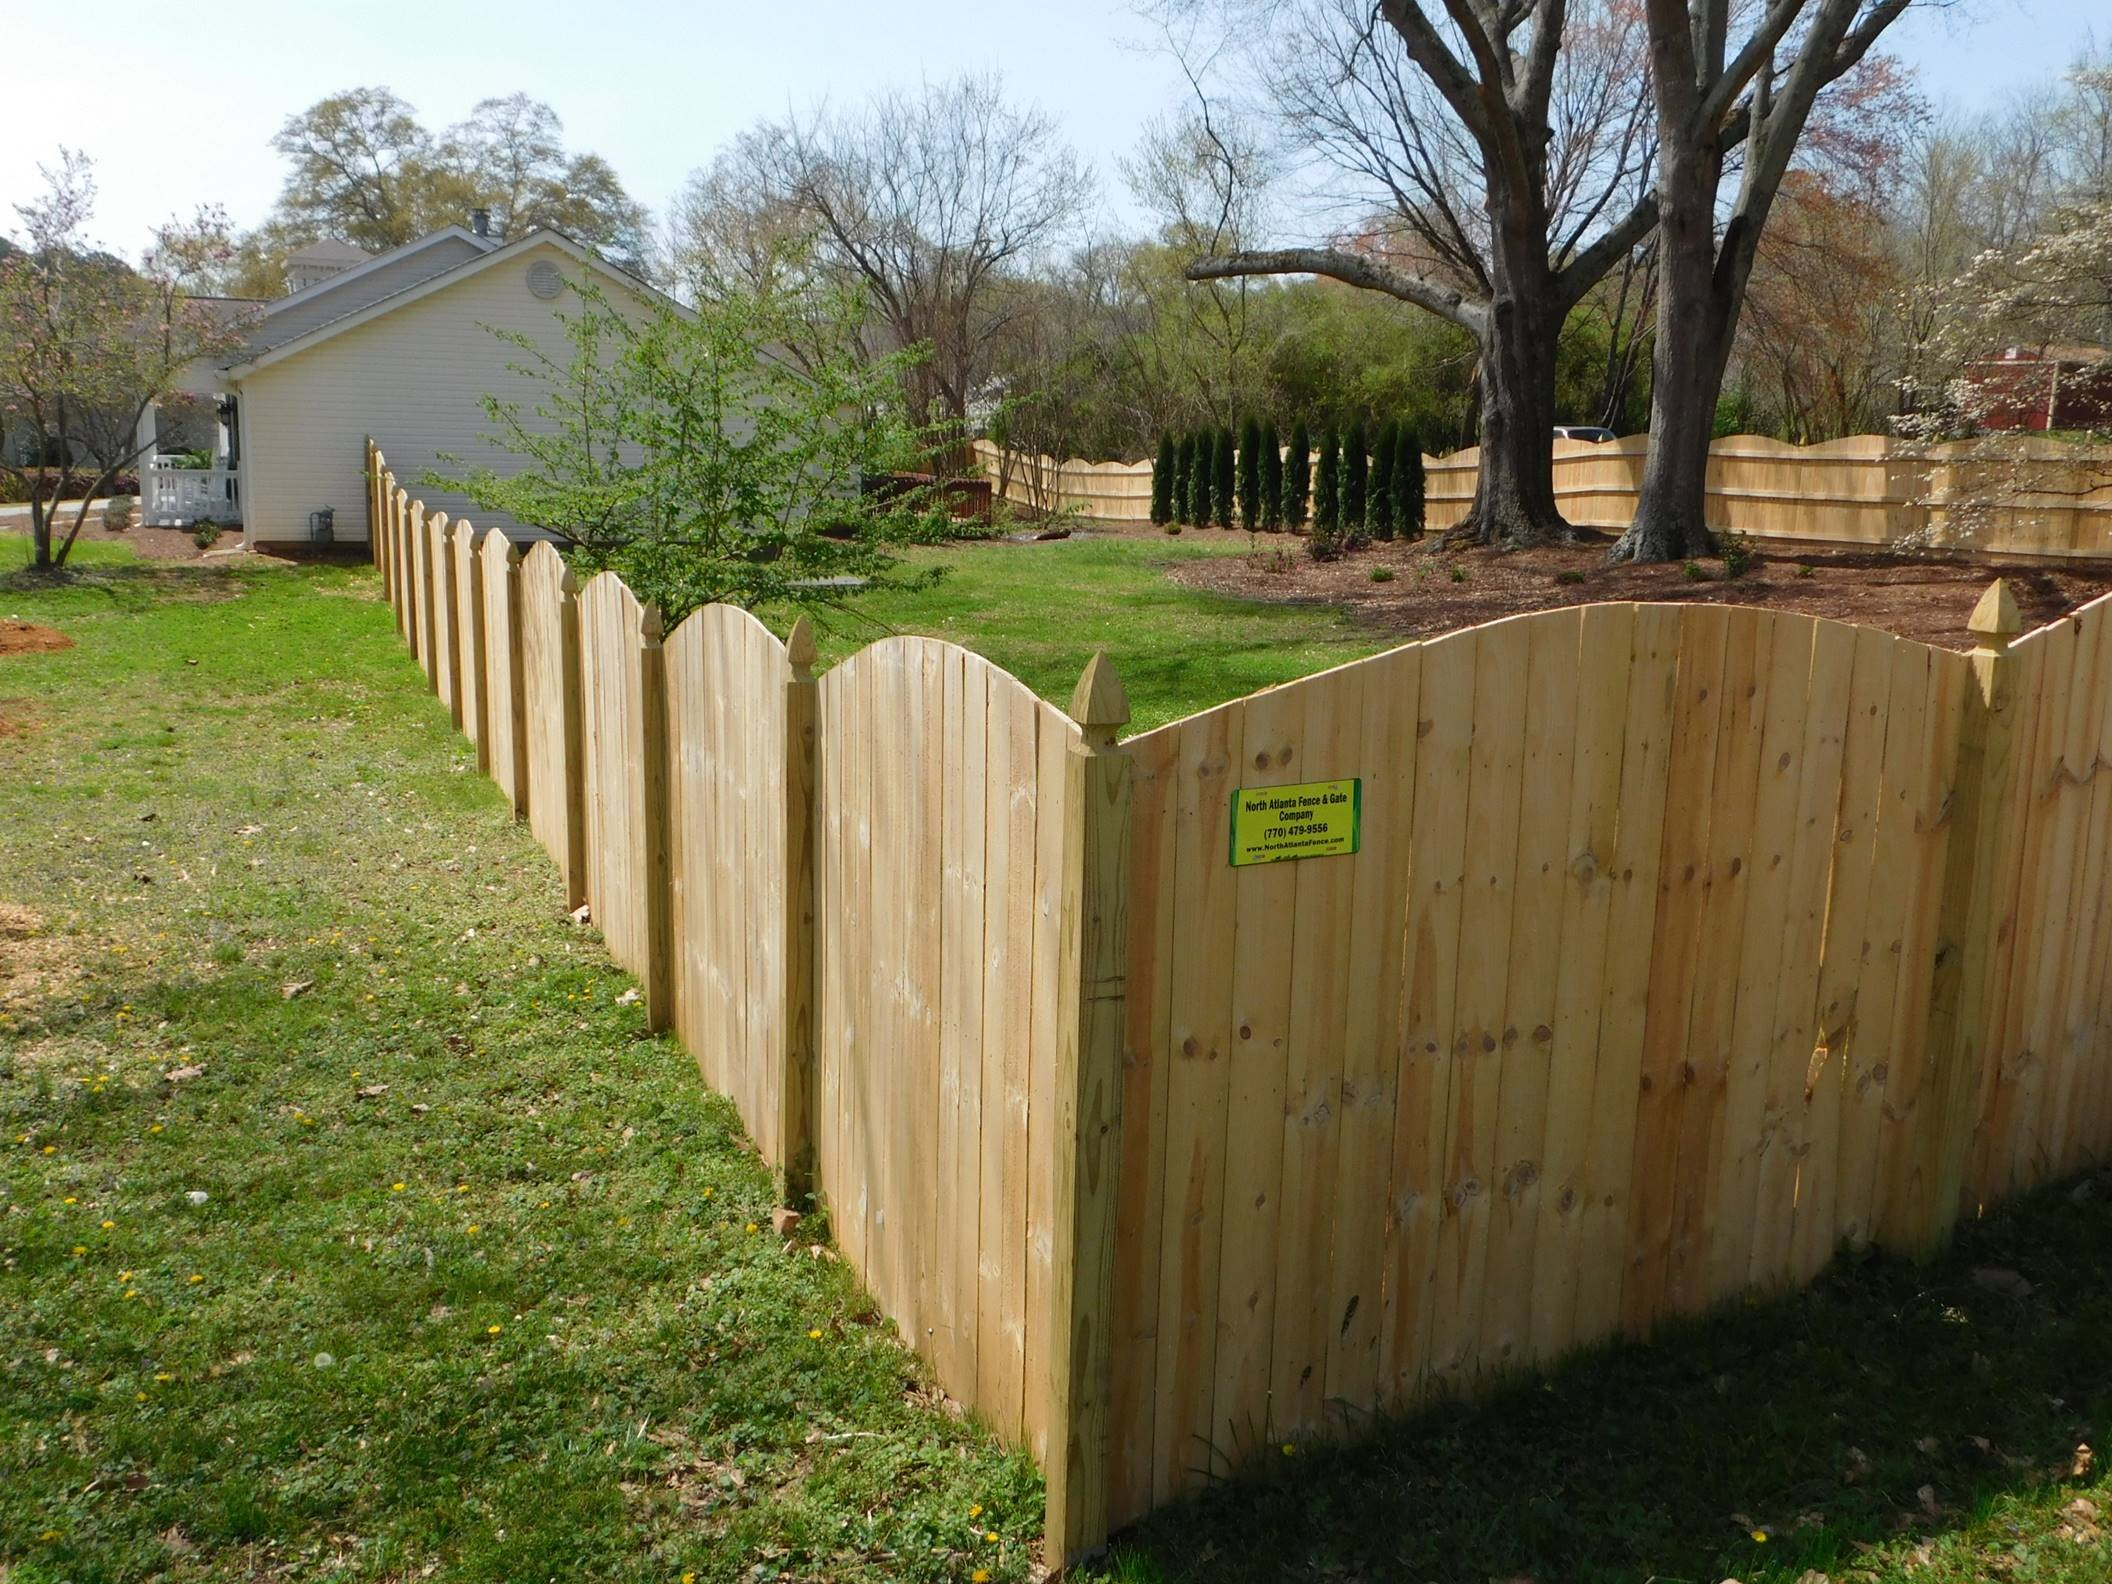 Backyard Fence North Atlanta Fence Gate Company Inc in 15 Clever Ways How to Makeover Backyard Fence Company